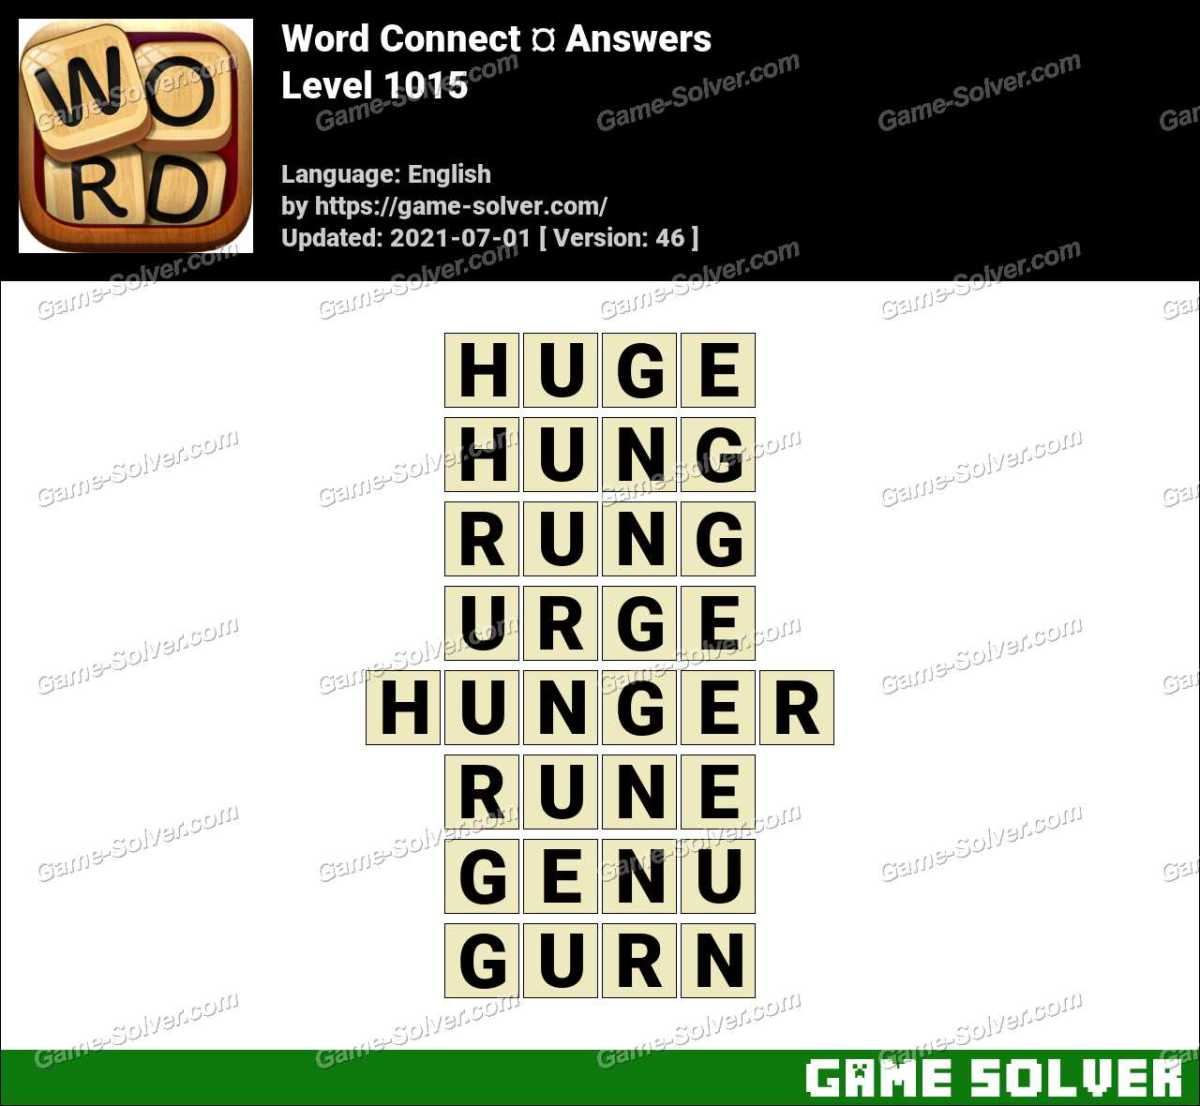 Word Connect Level 1015 Answers